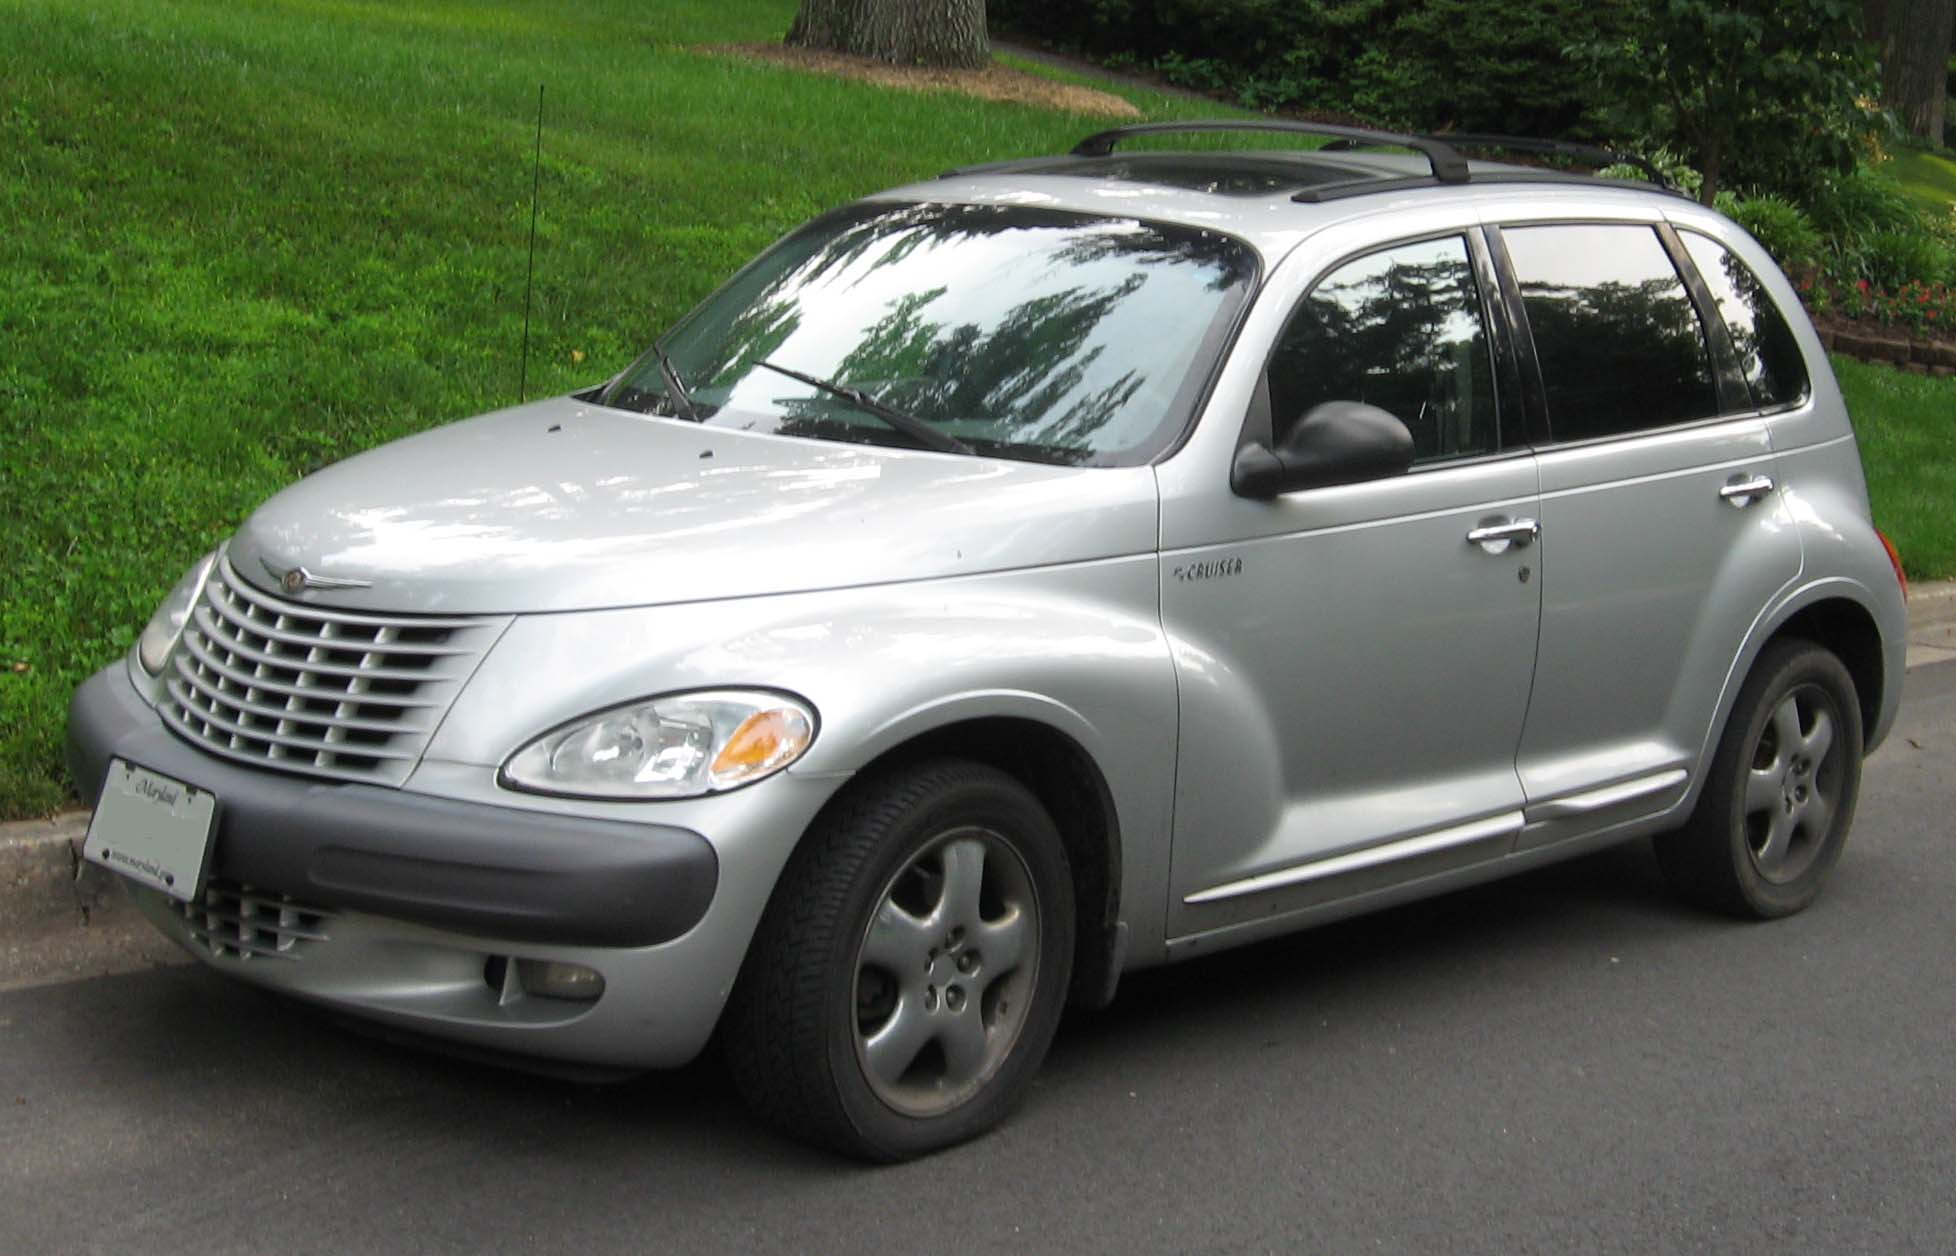 2007 Chrysler Pt Cruiser #2